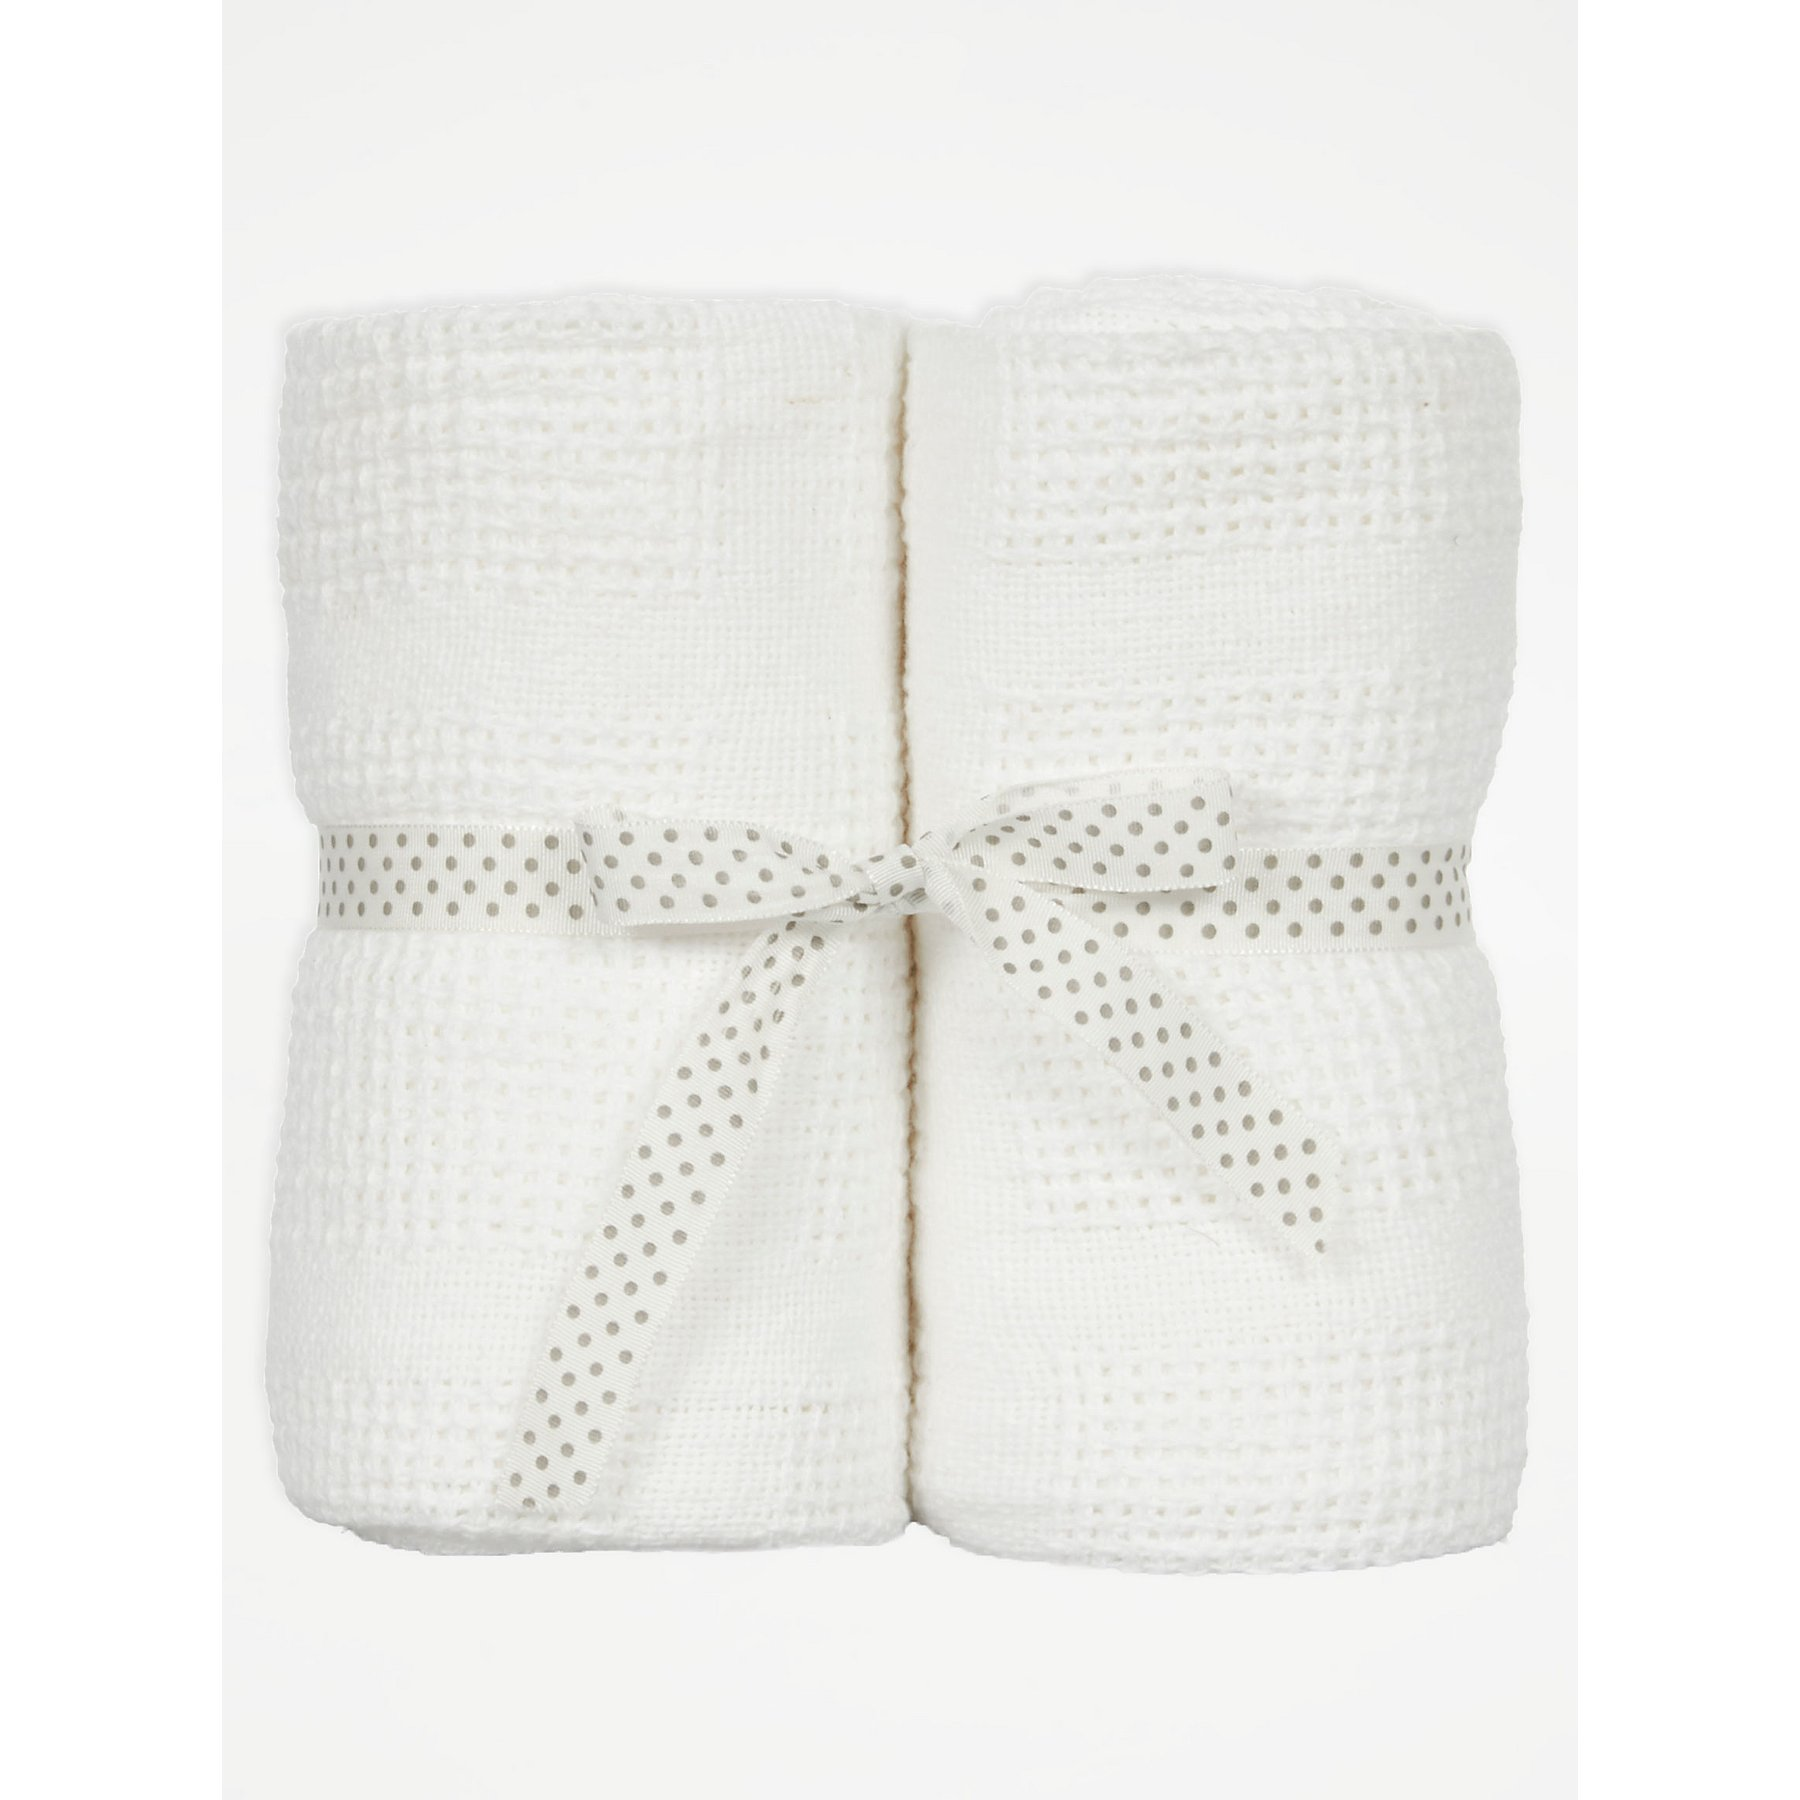 White Cellular Baby Shawl 2 Pack